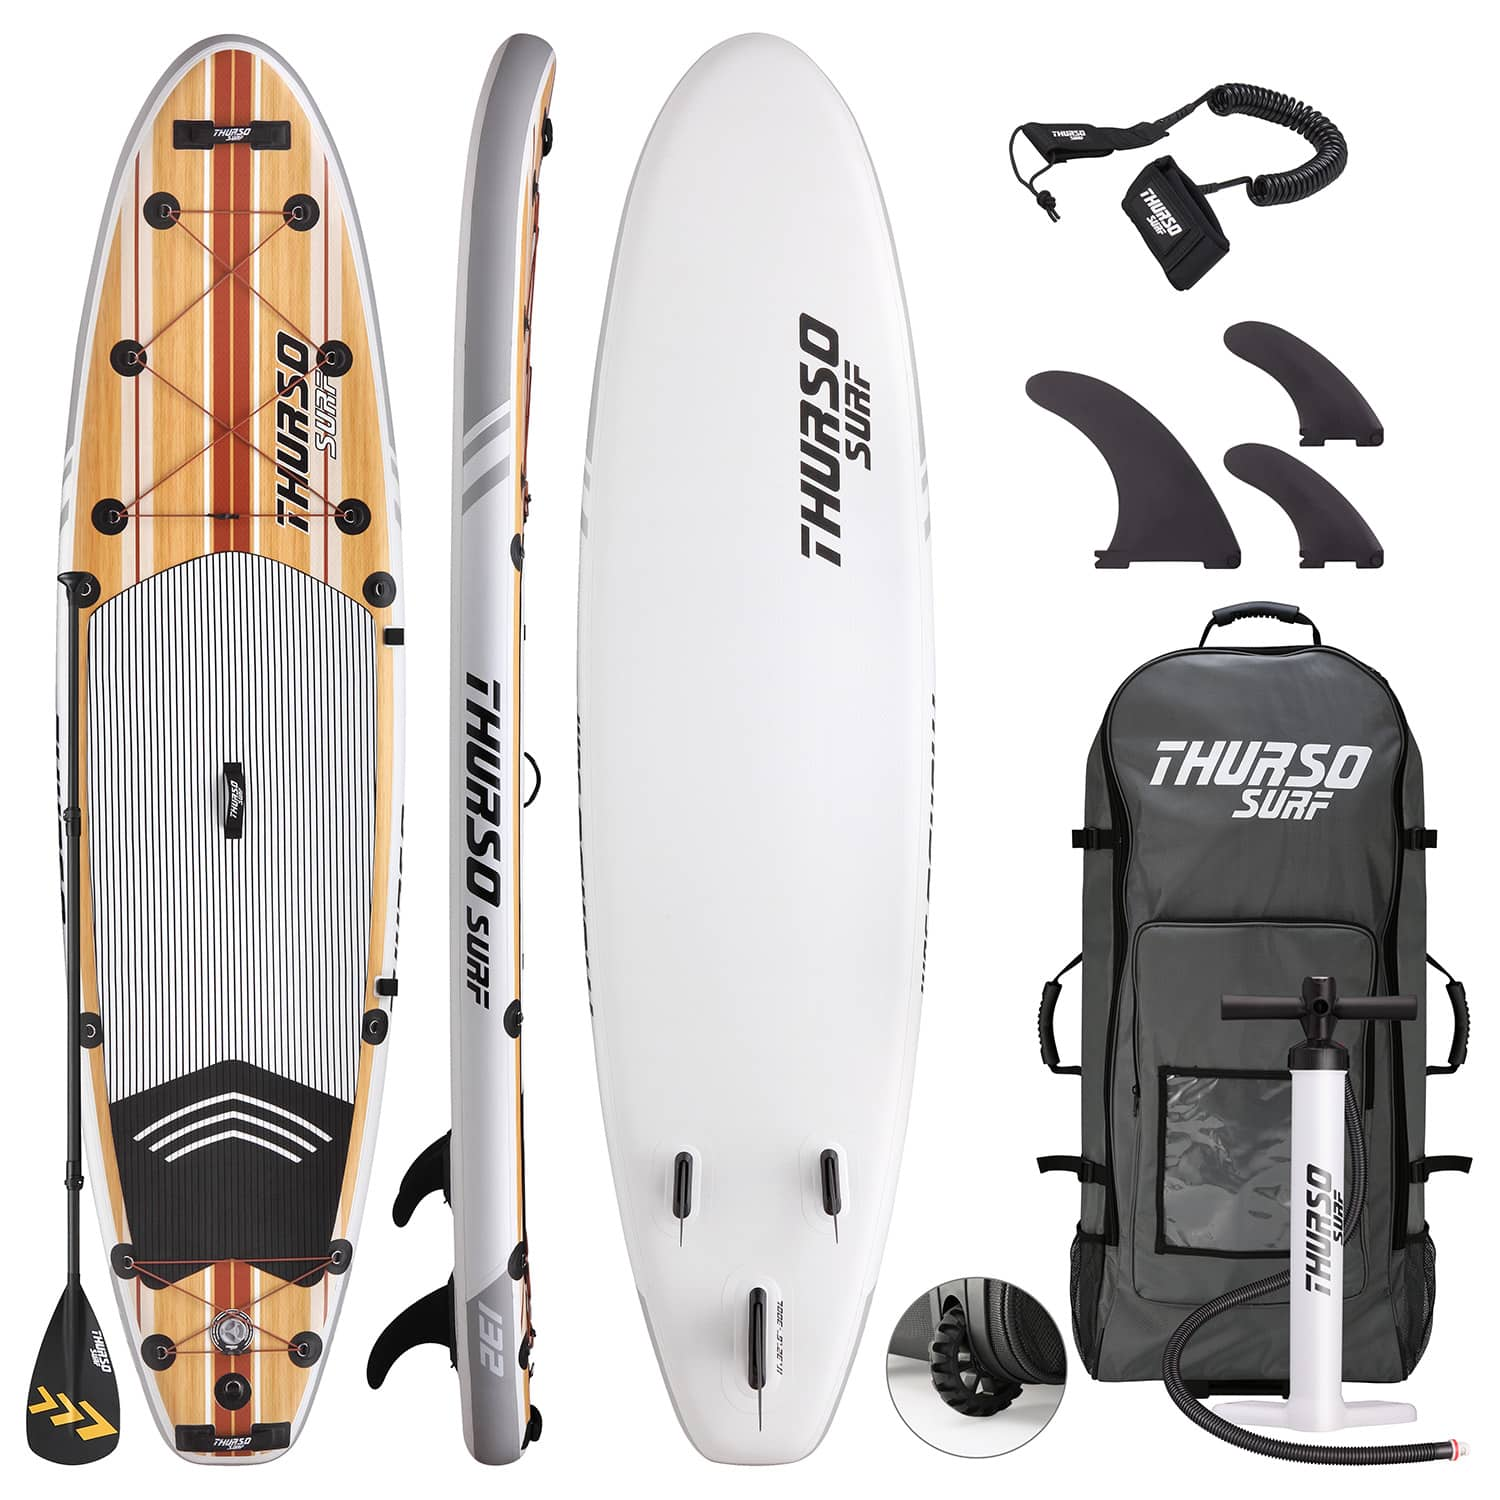 Thurso Surf Expedition Touring SUP